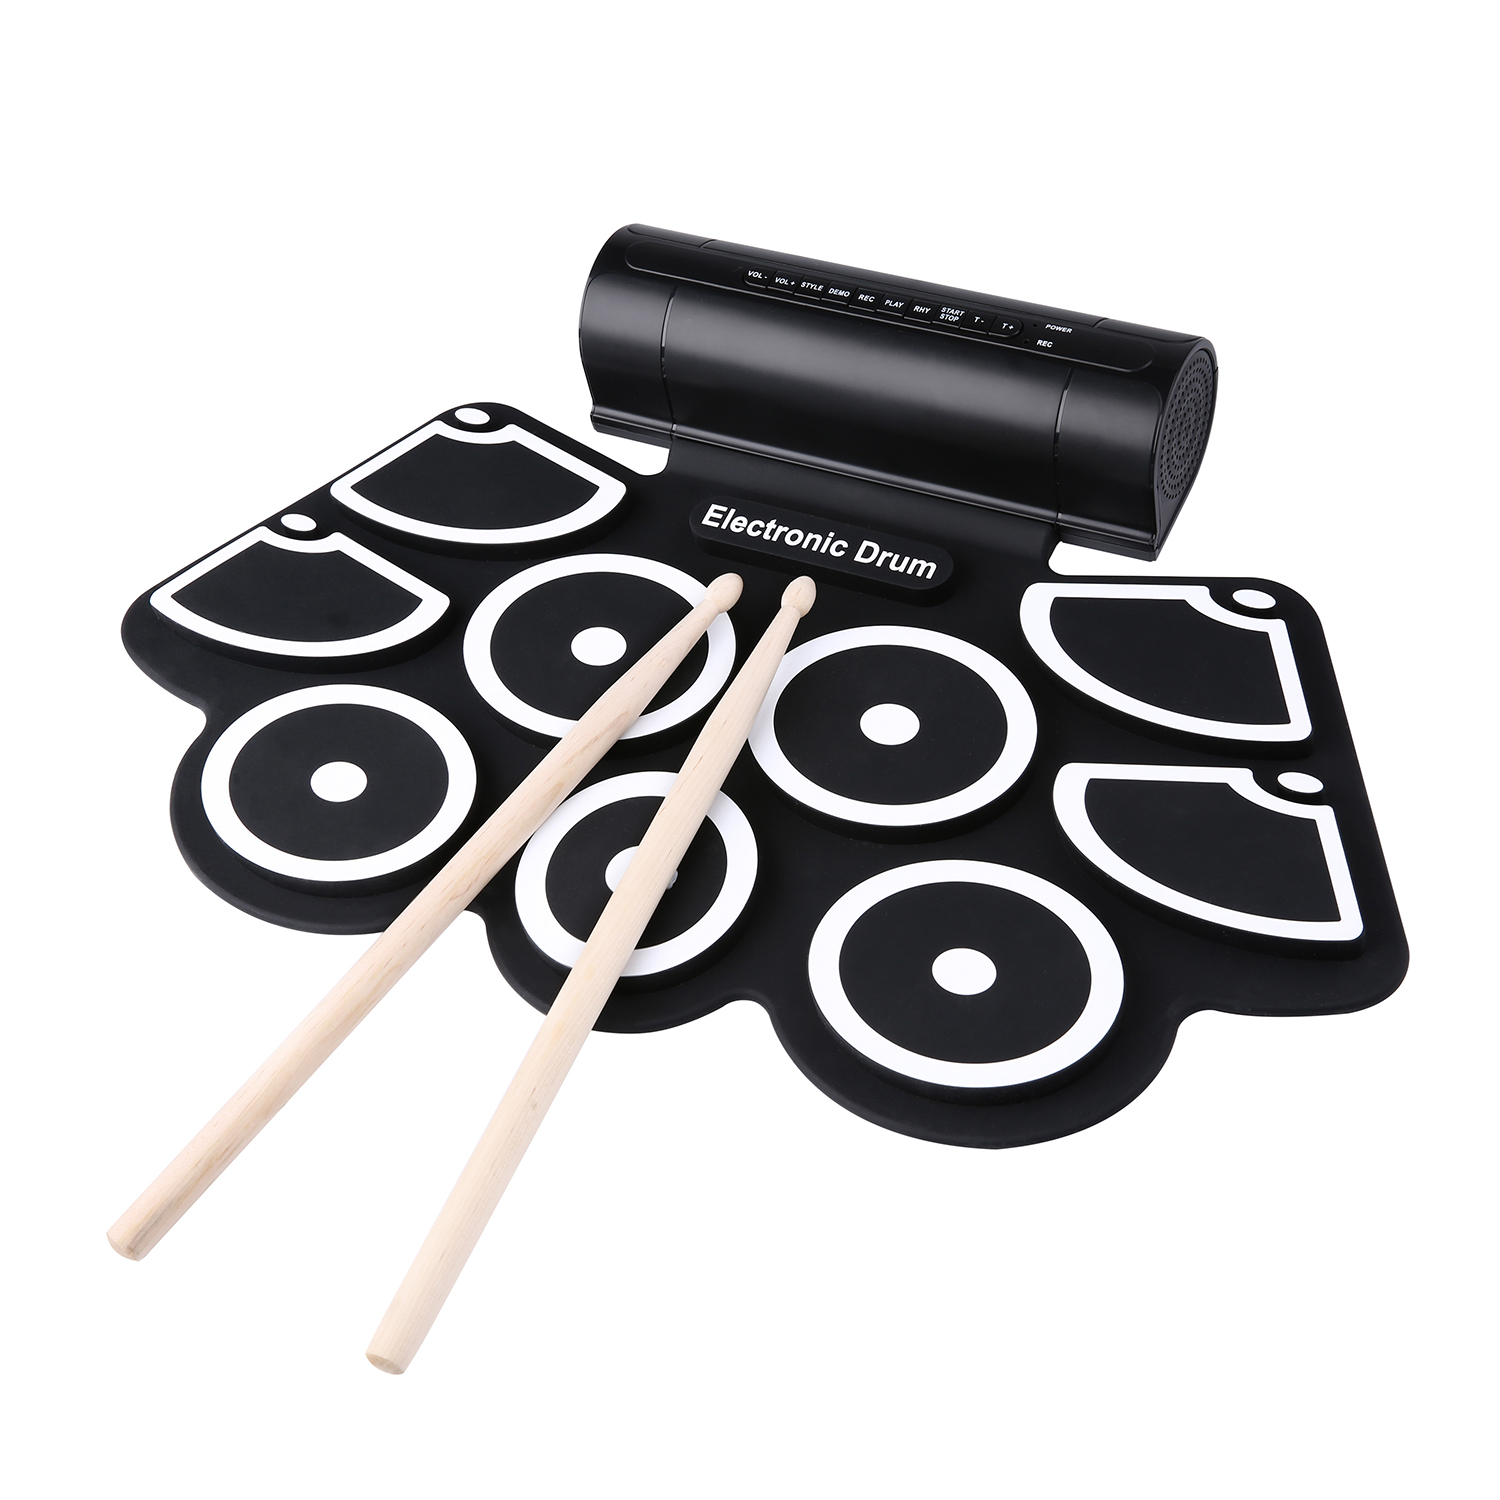 Portable Roll up Electronic USB MIDI Drum Set Kits 9 Pads Built-in Speakers Foot Pedals Drumsticks USB Cable For Practice купить в Москве 2019